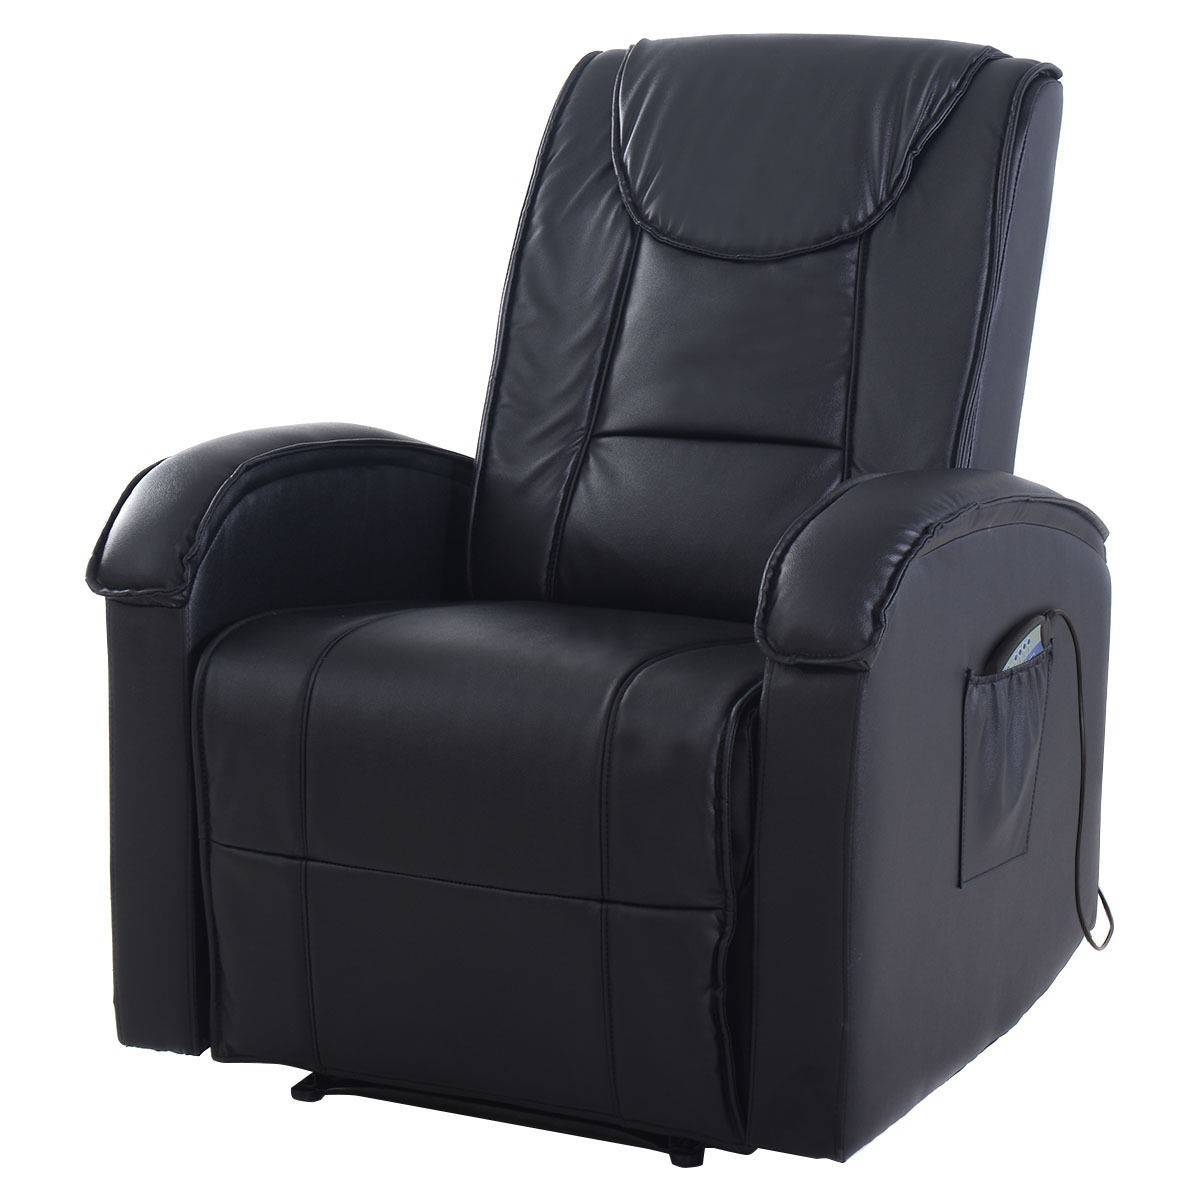 Ergonomic Massage Sofa Chair Electric Vibrating Recliner Lounge W inside Sofa Chair Recliner (Image 10 of 30)